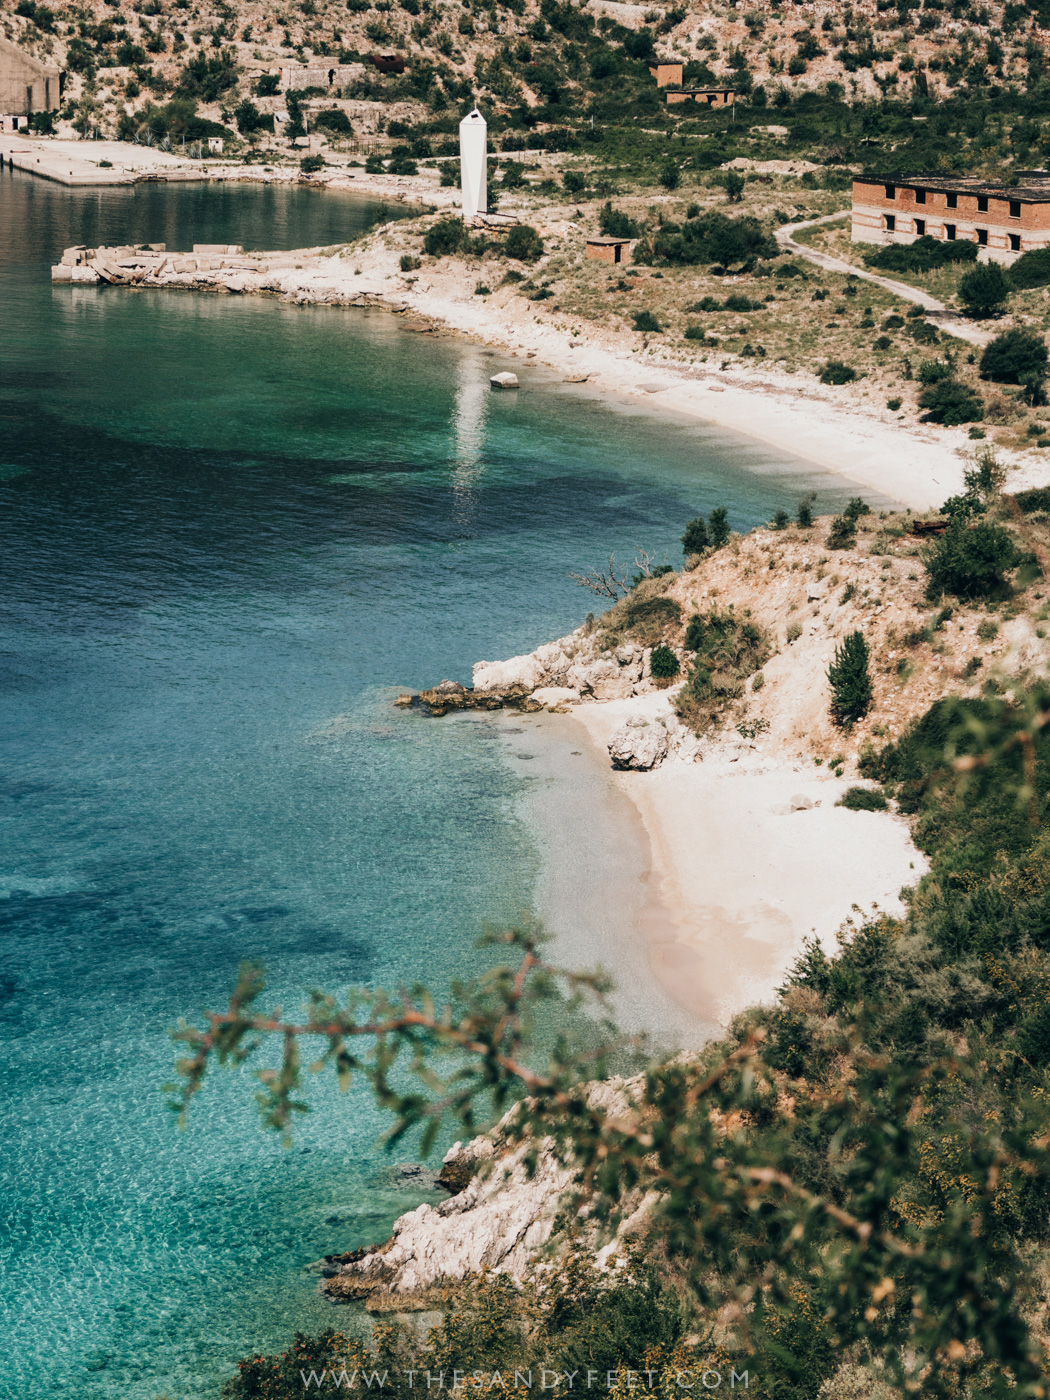 Porto Palermo | A Short Guide To The Best Things To Do In Himara, Albania: Where To Go, Stay And Eat In Albania's Best Beach Town And A Firm Favorite Along The Albanian Riviera.